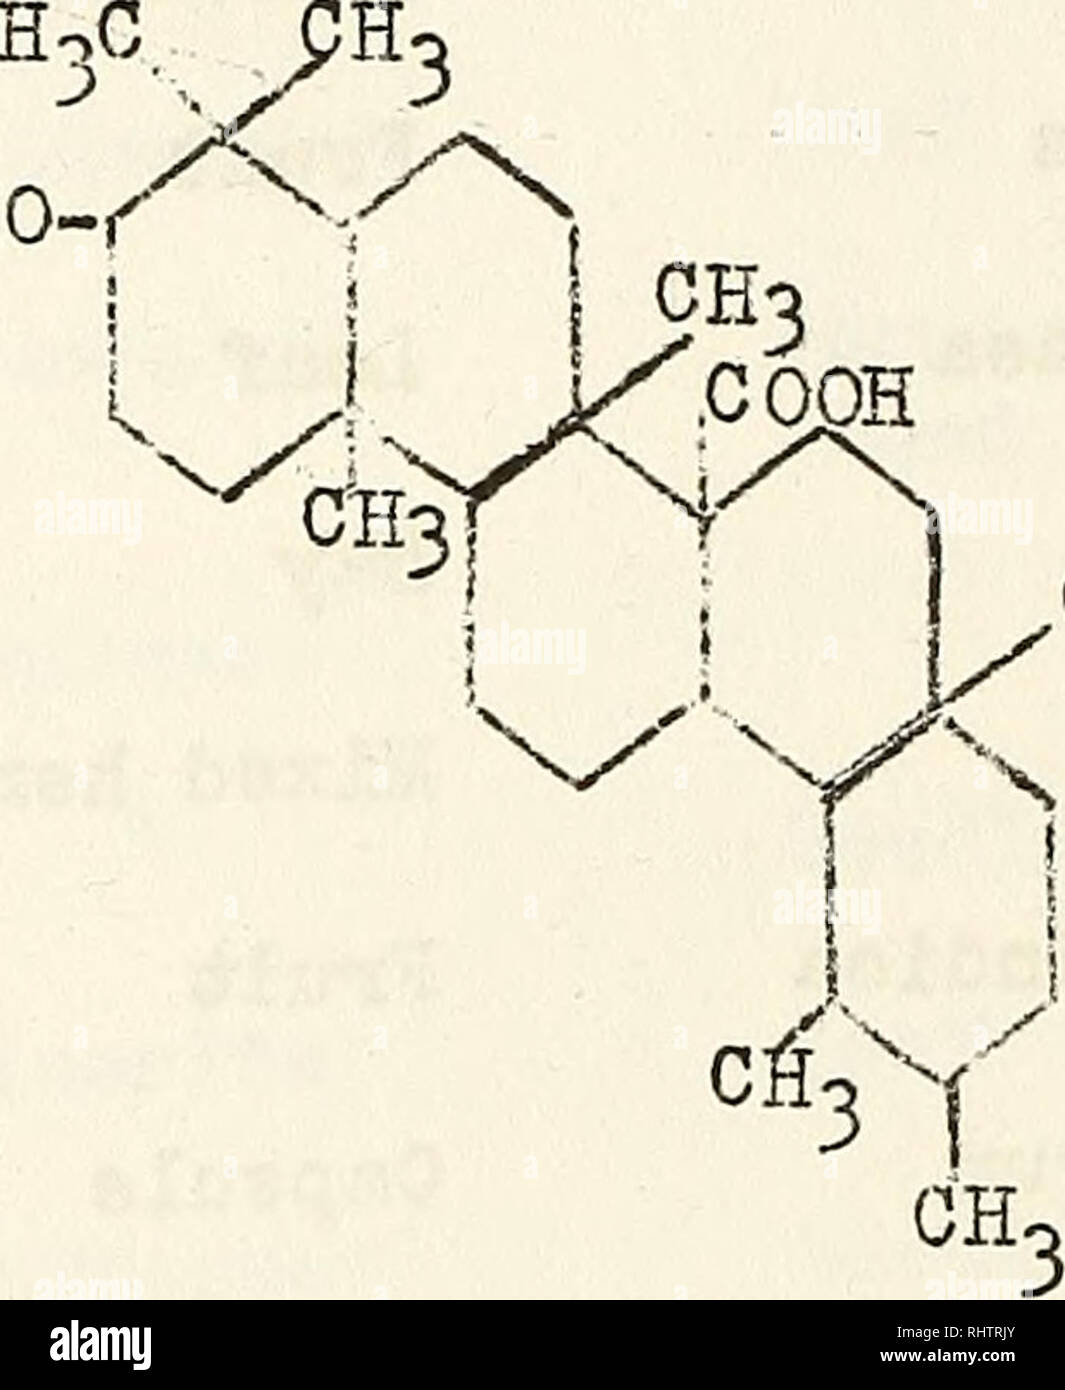 Bibliography Of Organic Acids In Higher Plants